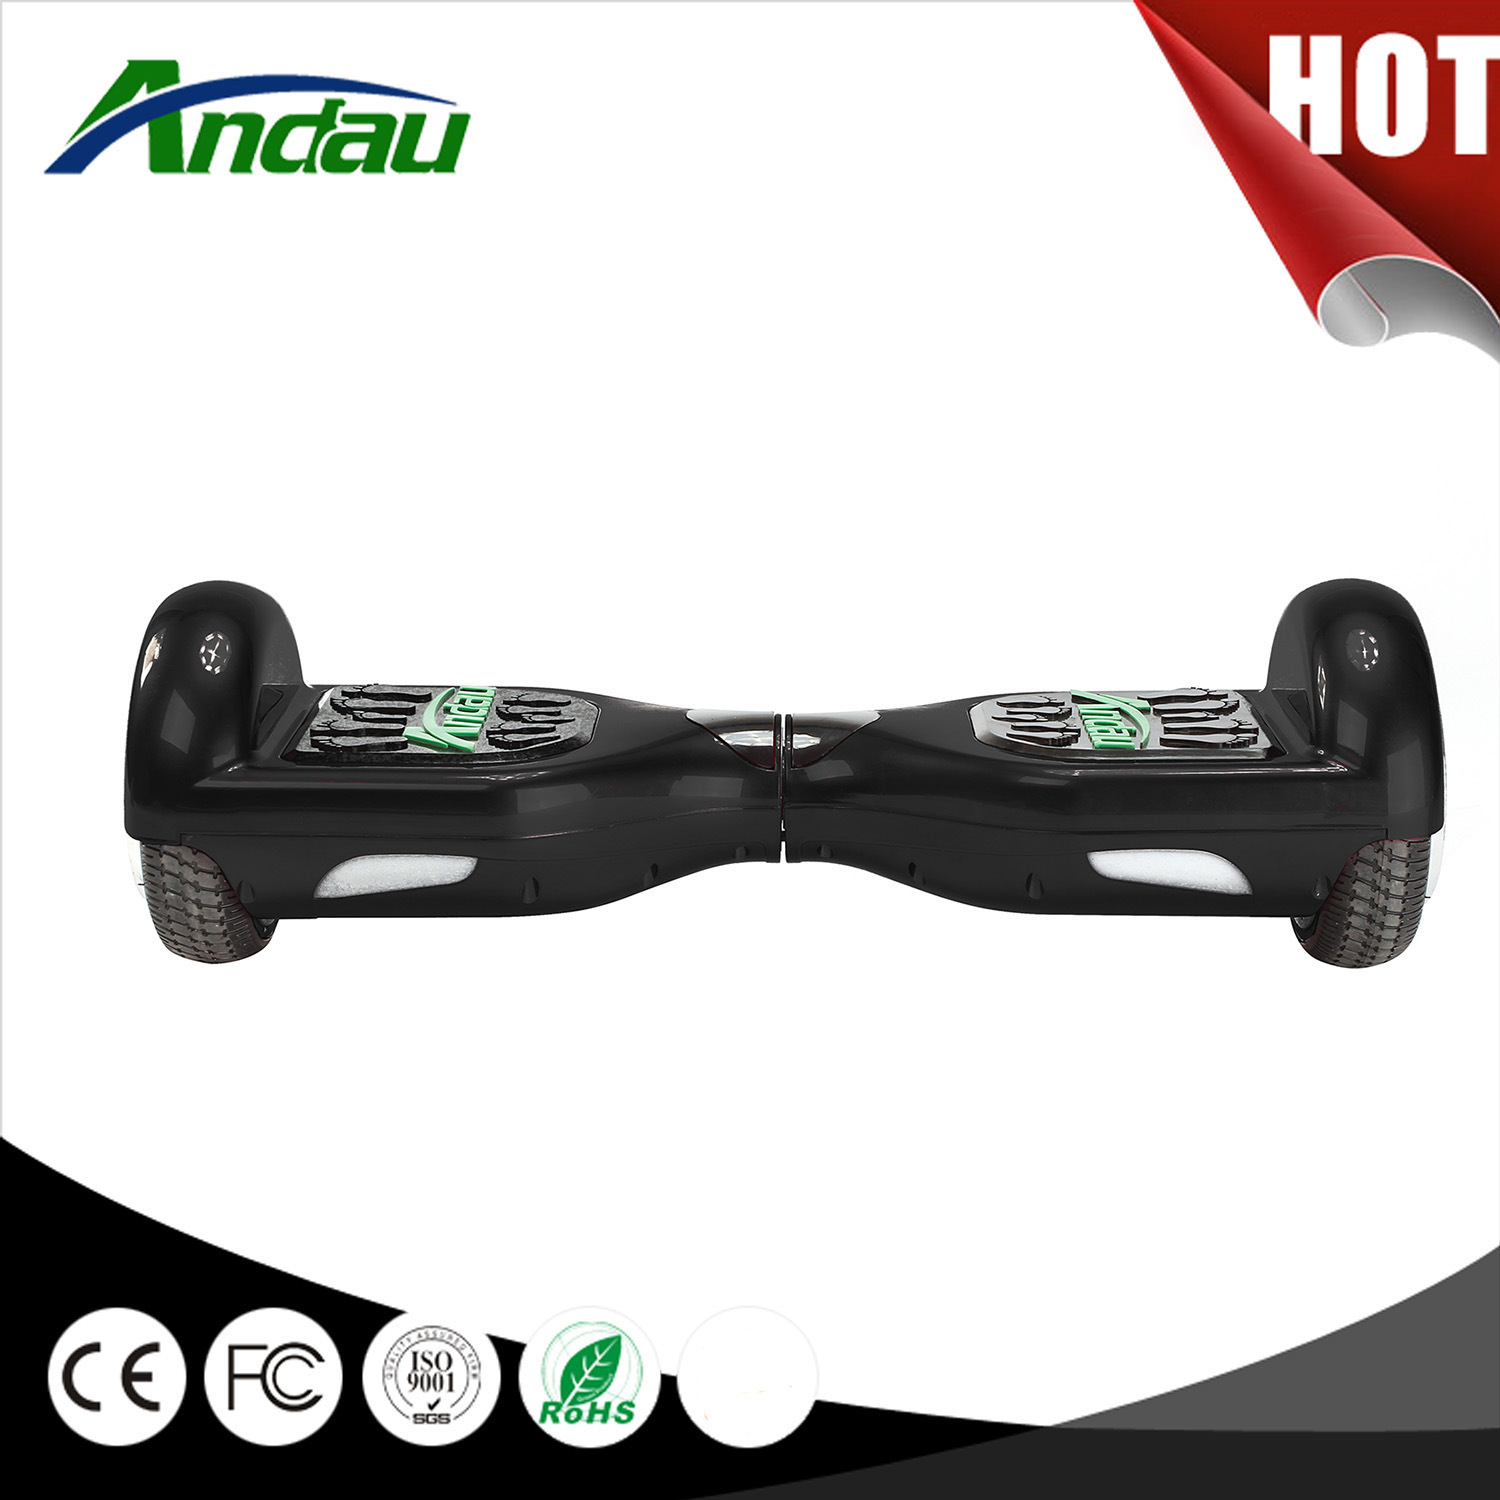 6.5 Inch Self Balancing Electric Scooter